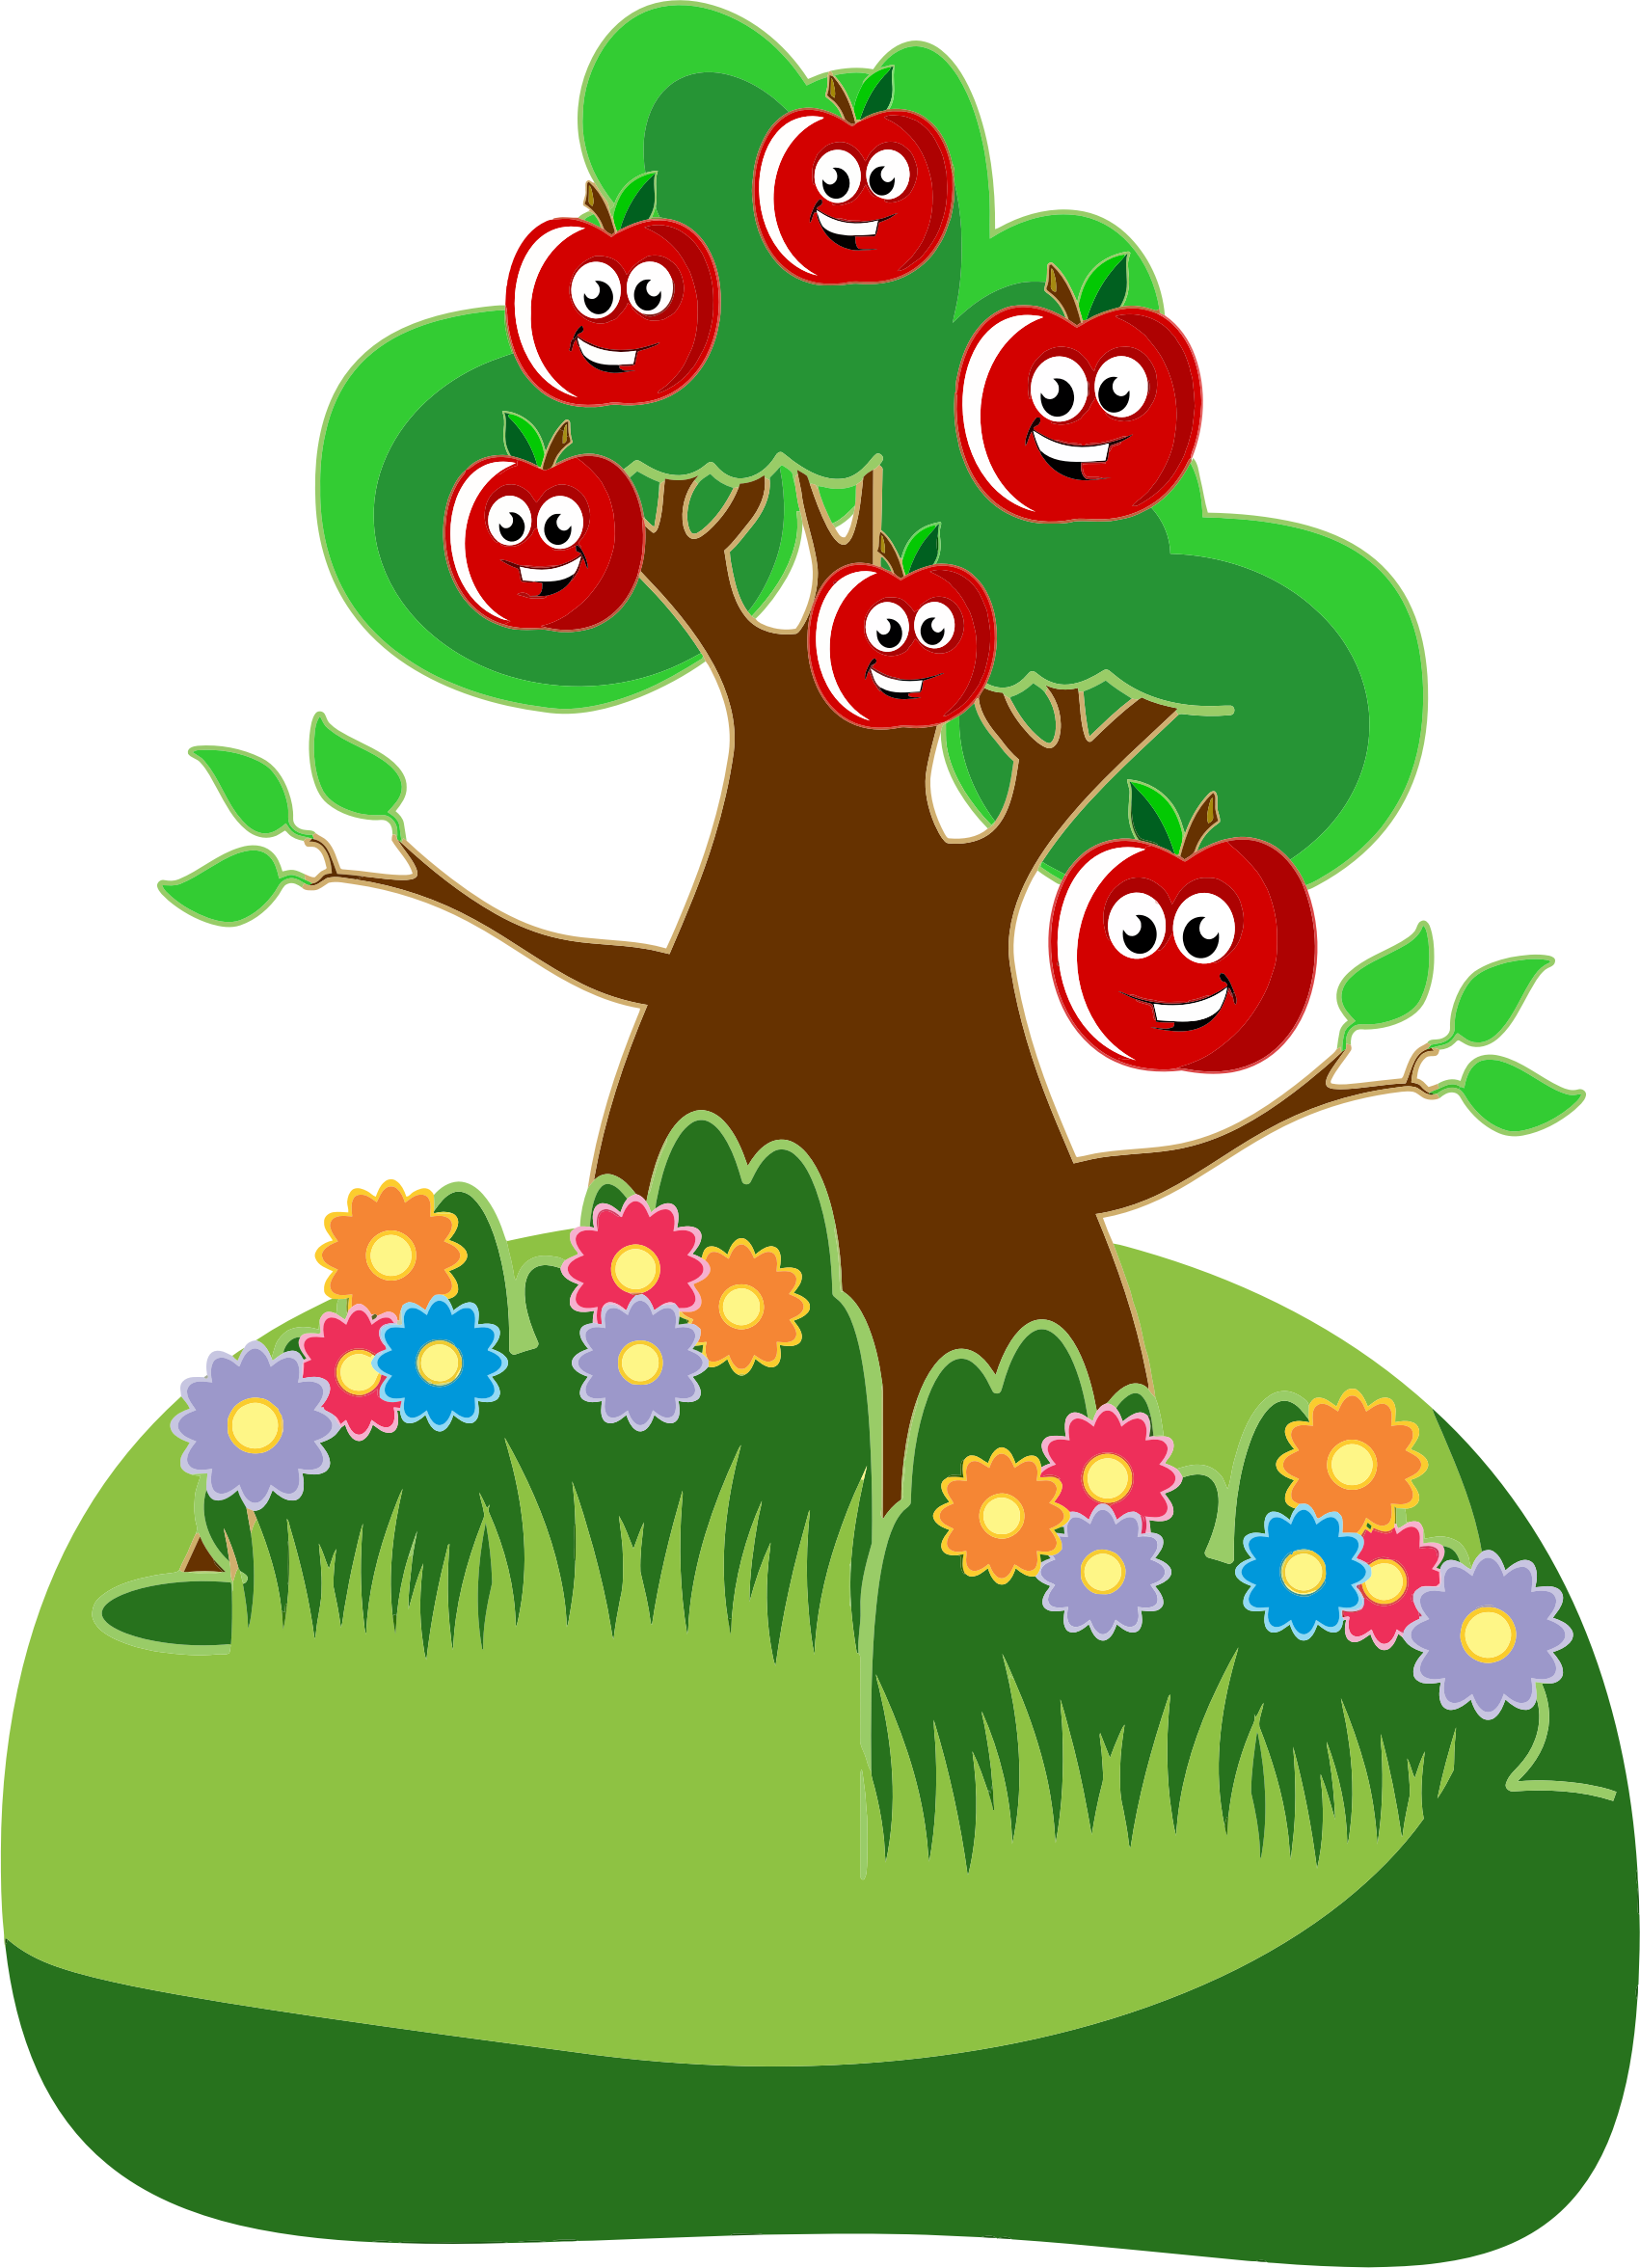 Anthropomorphic Happy Apples Tree by GDJ